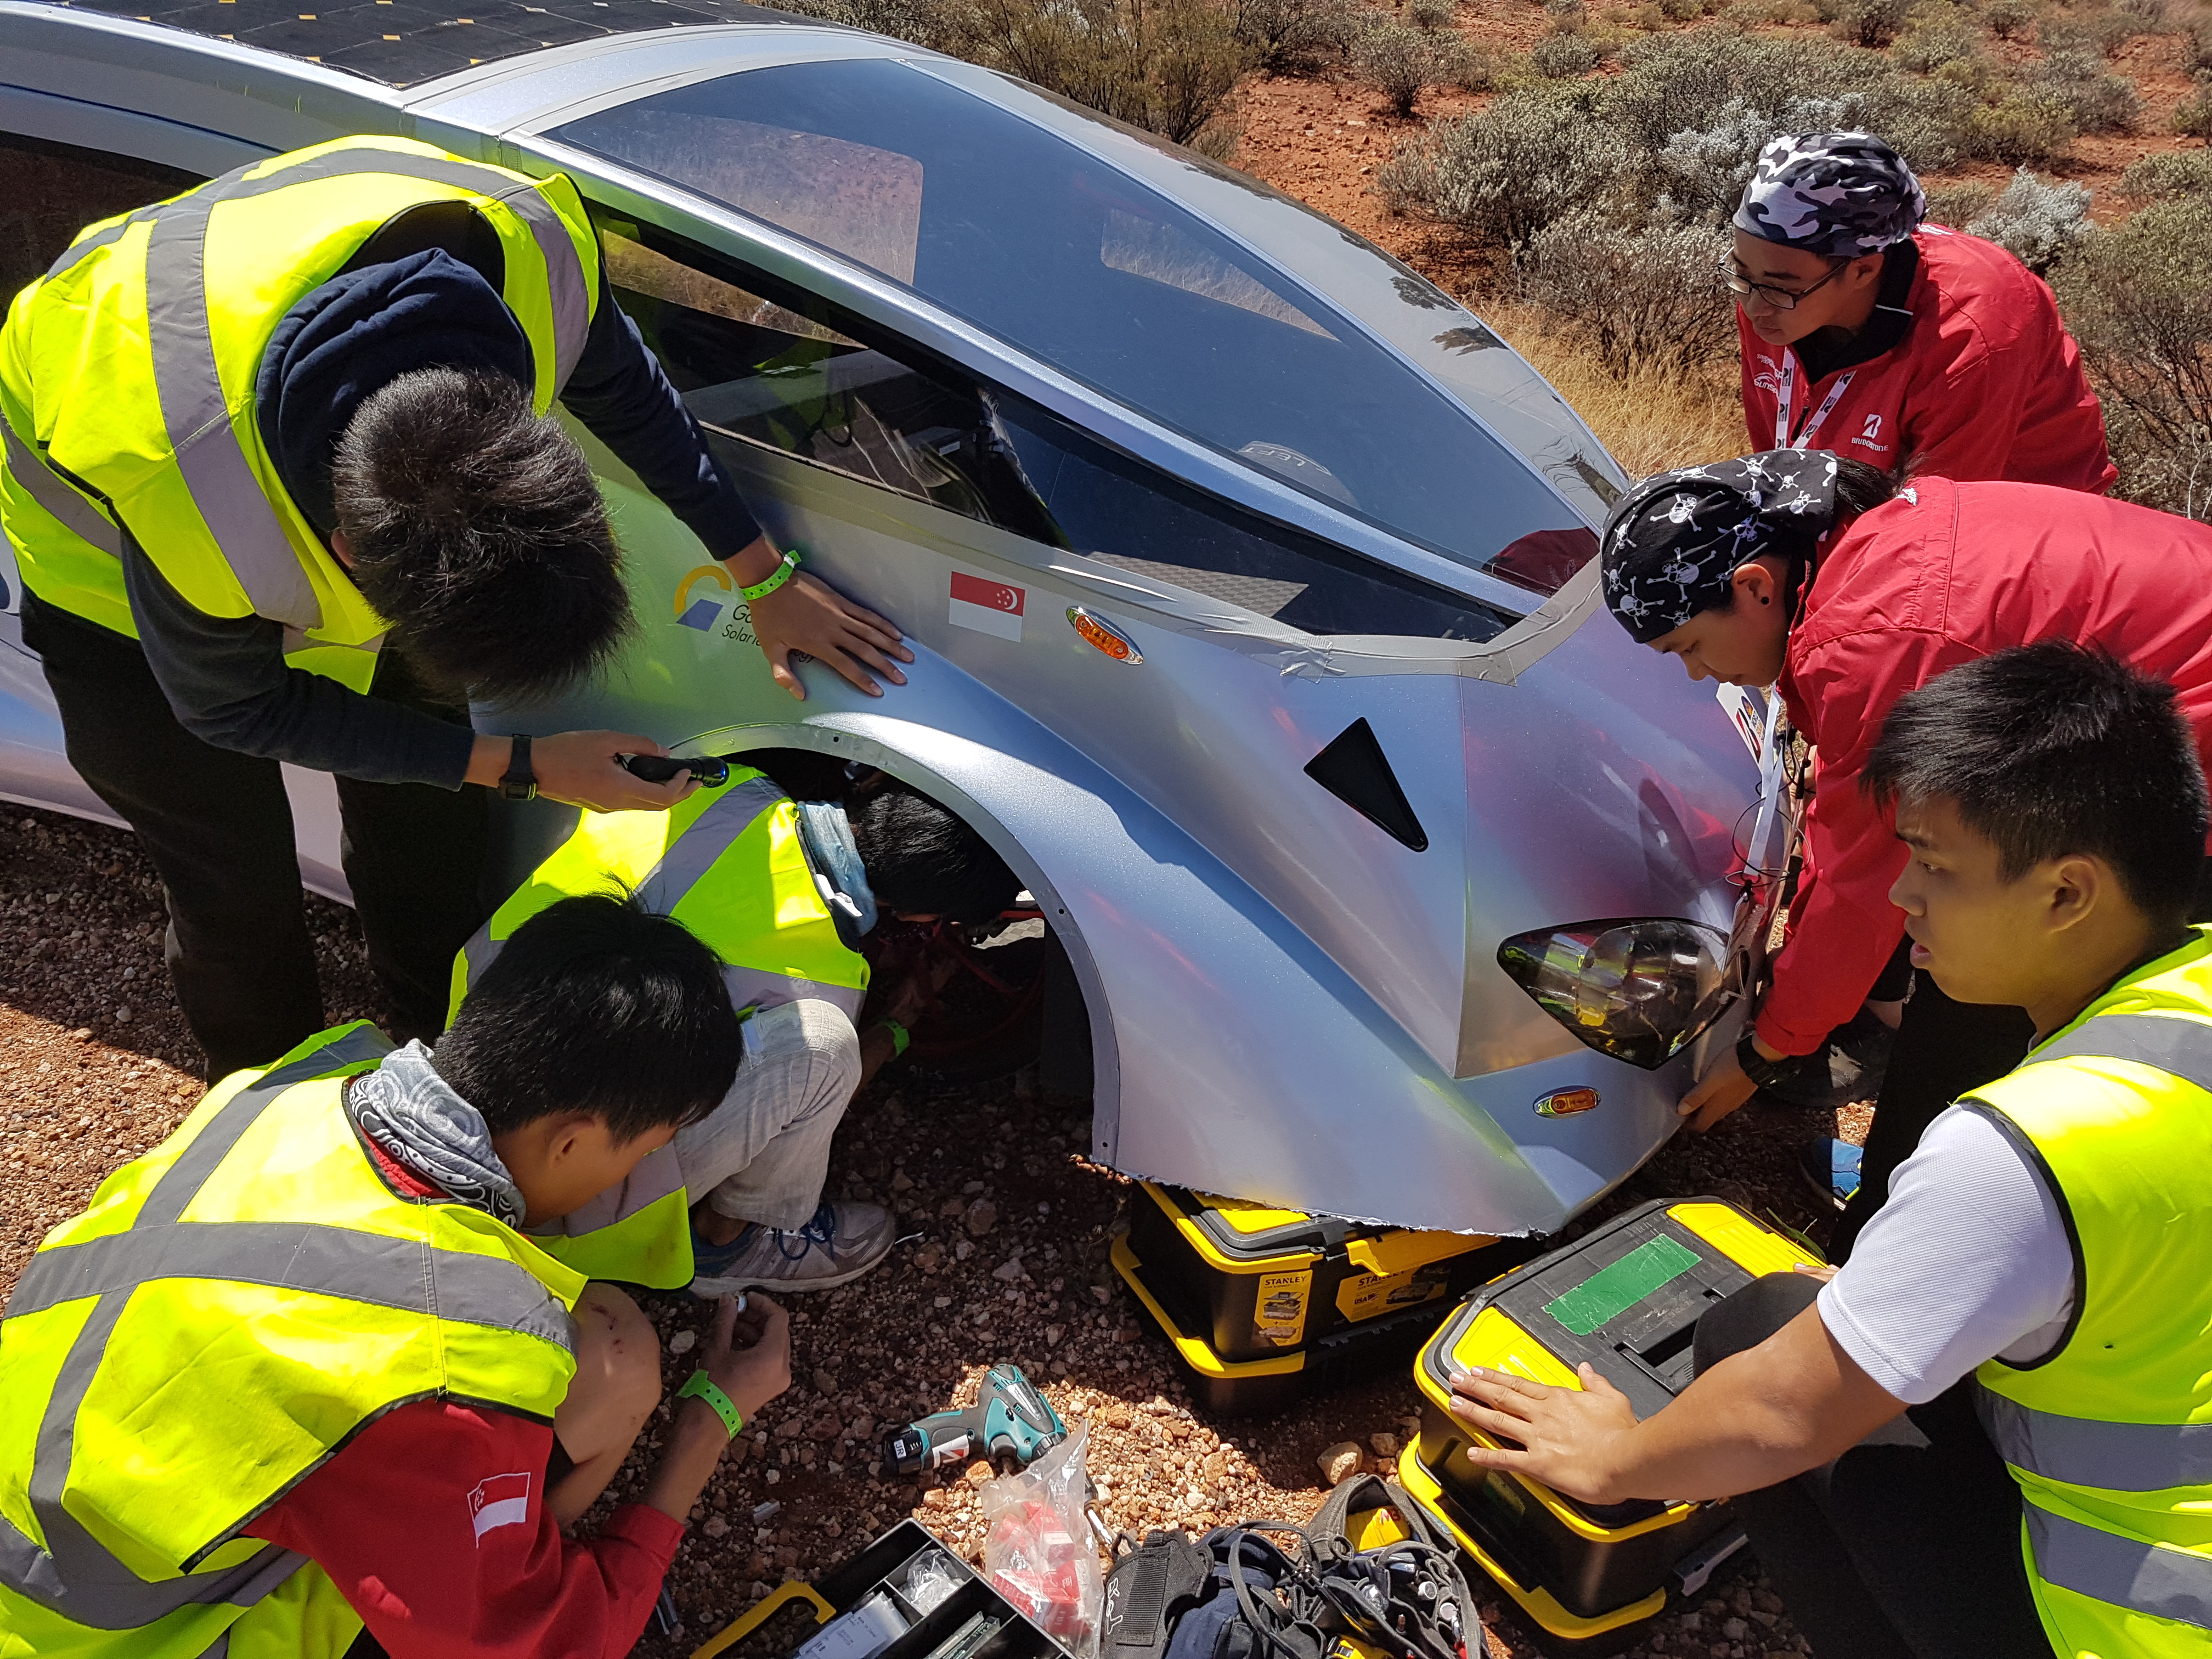 Fixing a tire to continue on their grueling 3000km race from Darwin to Adelaide